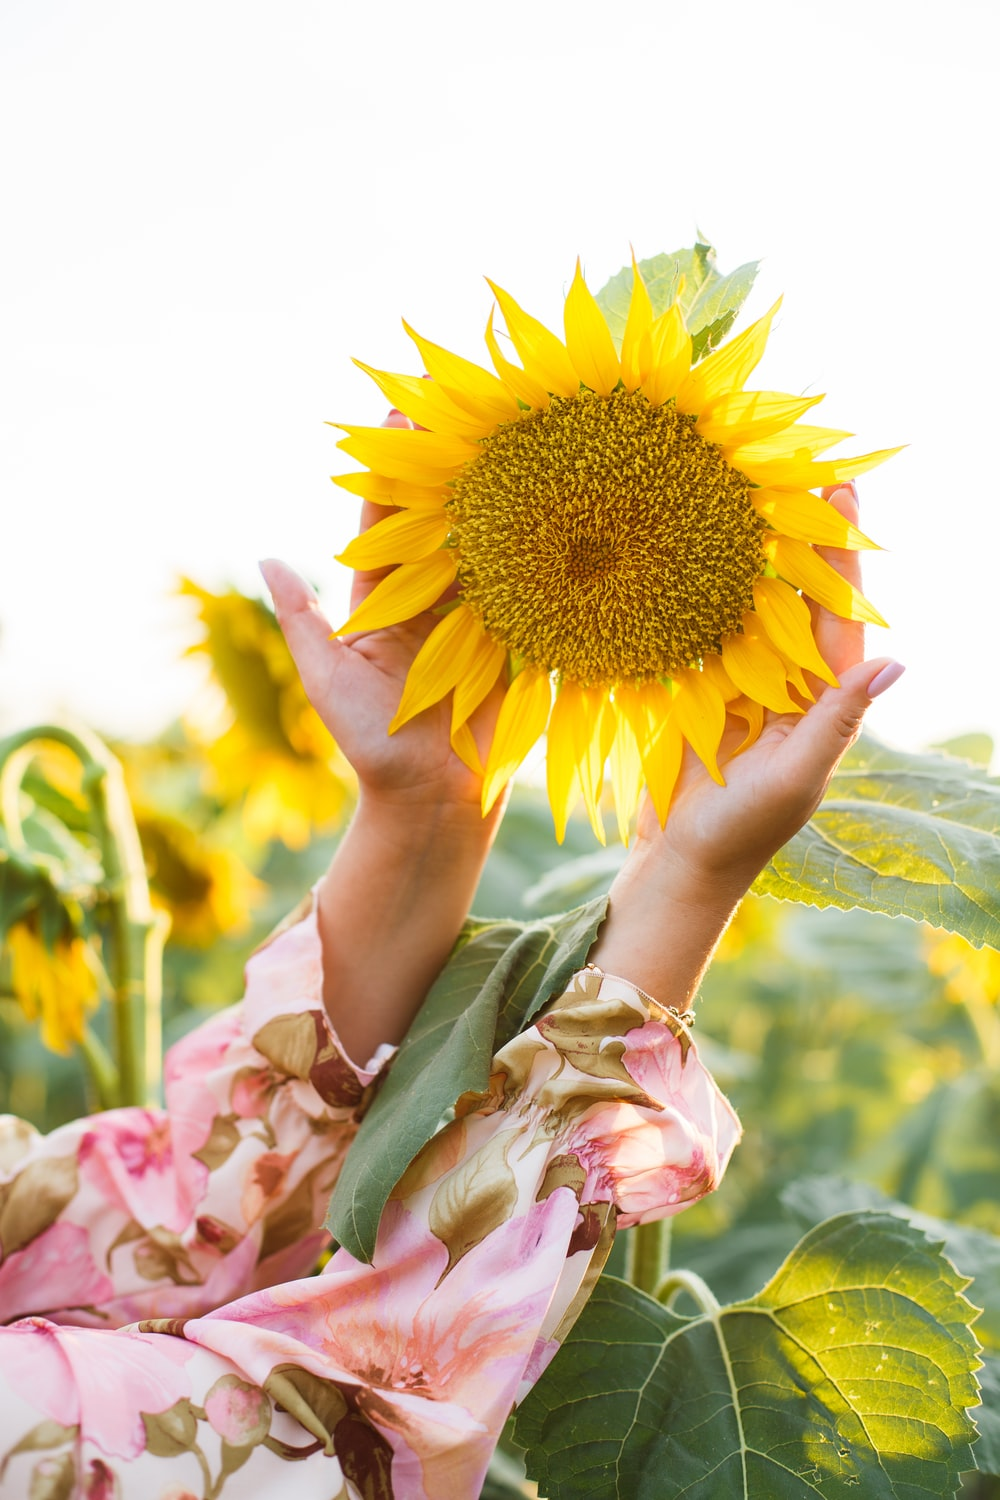 person holding sunflower during daytime